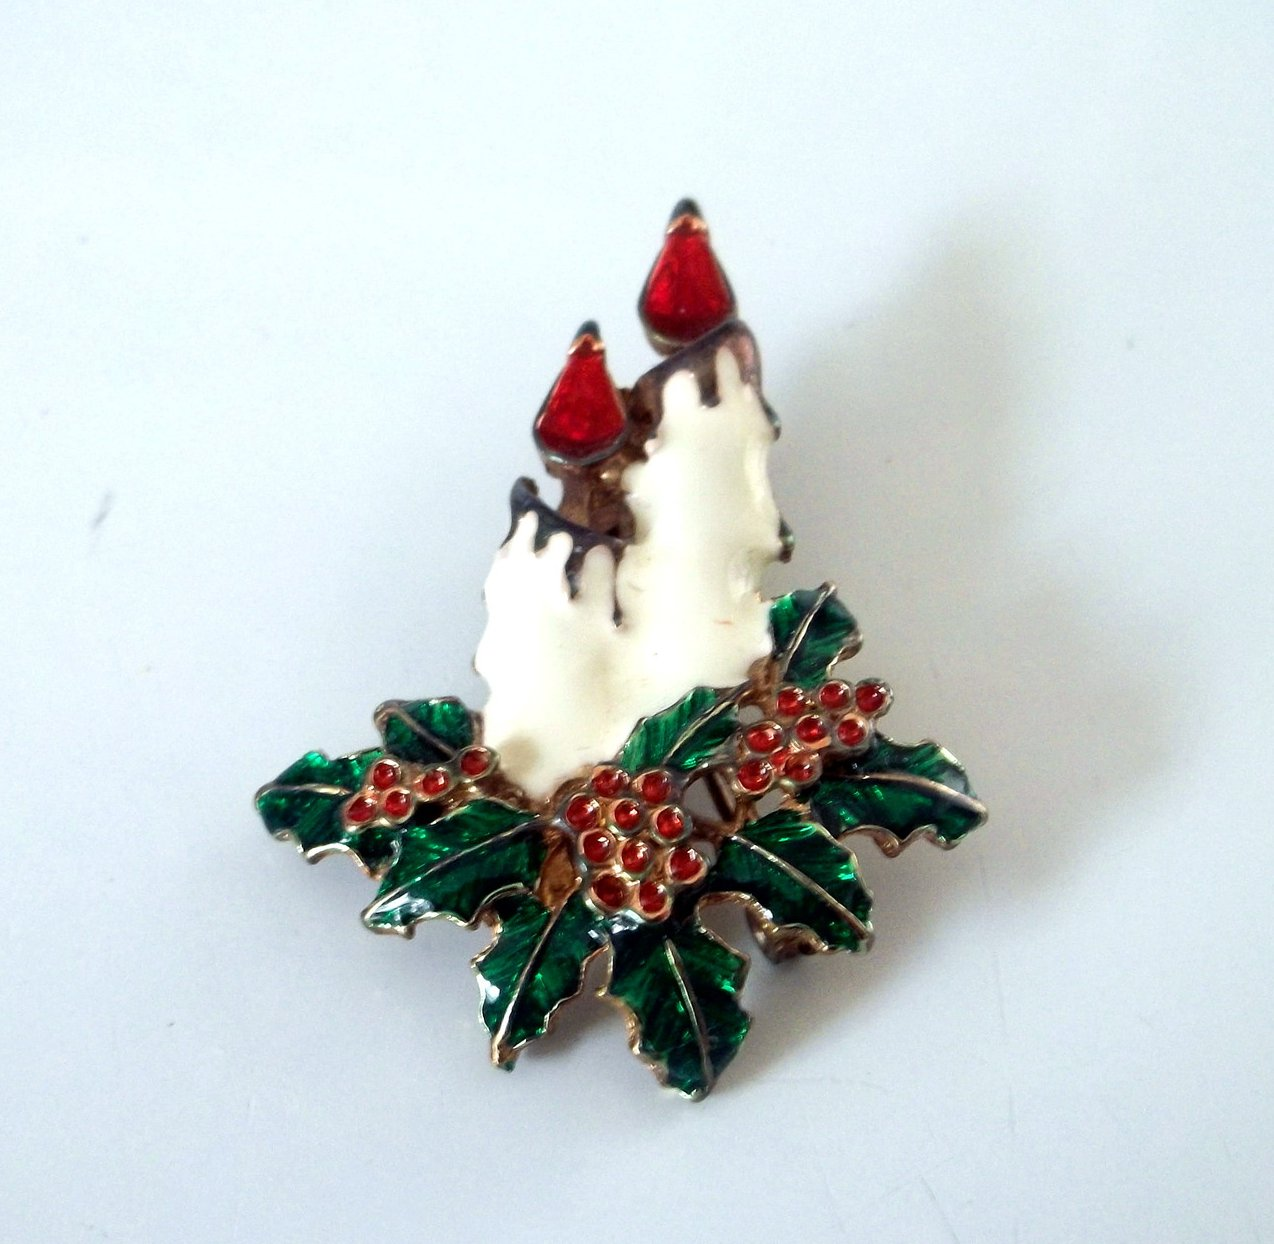 Christmas Pin Brooch Candles Enamel Over Gold Vintage Ladies Fashion